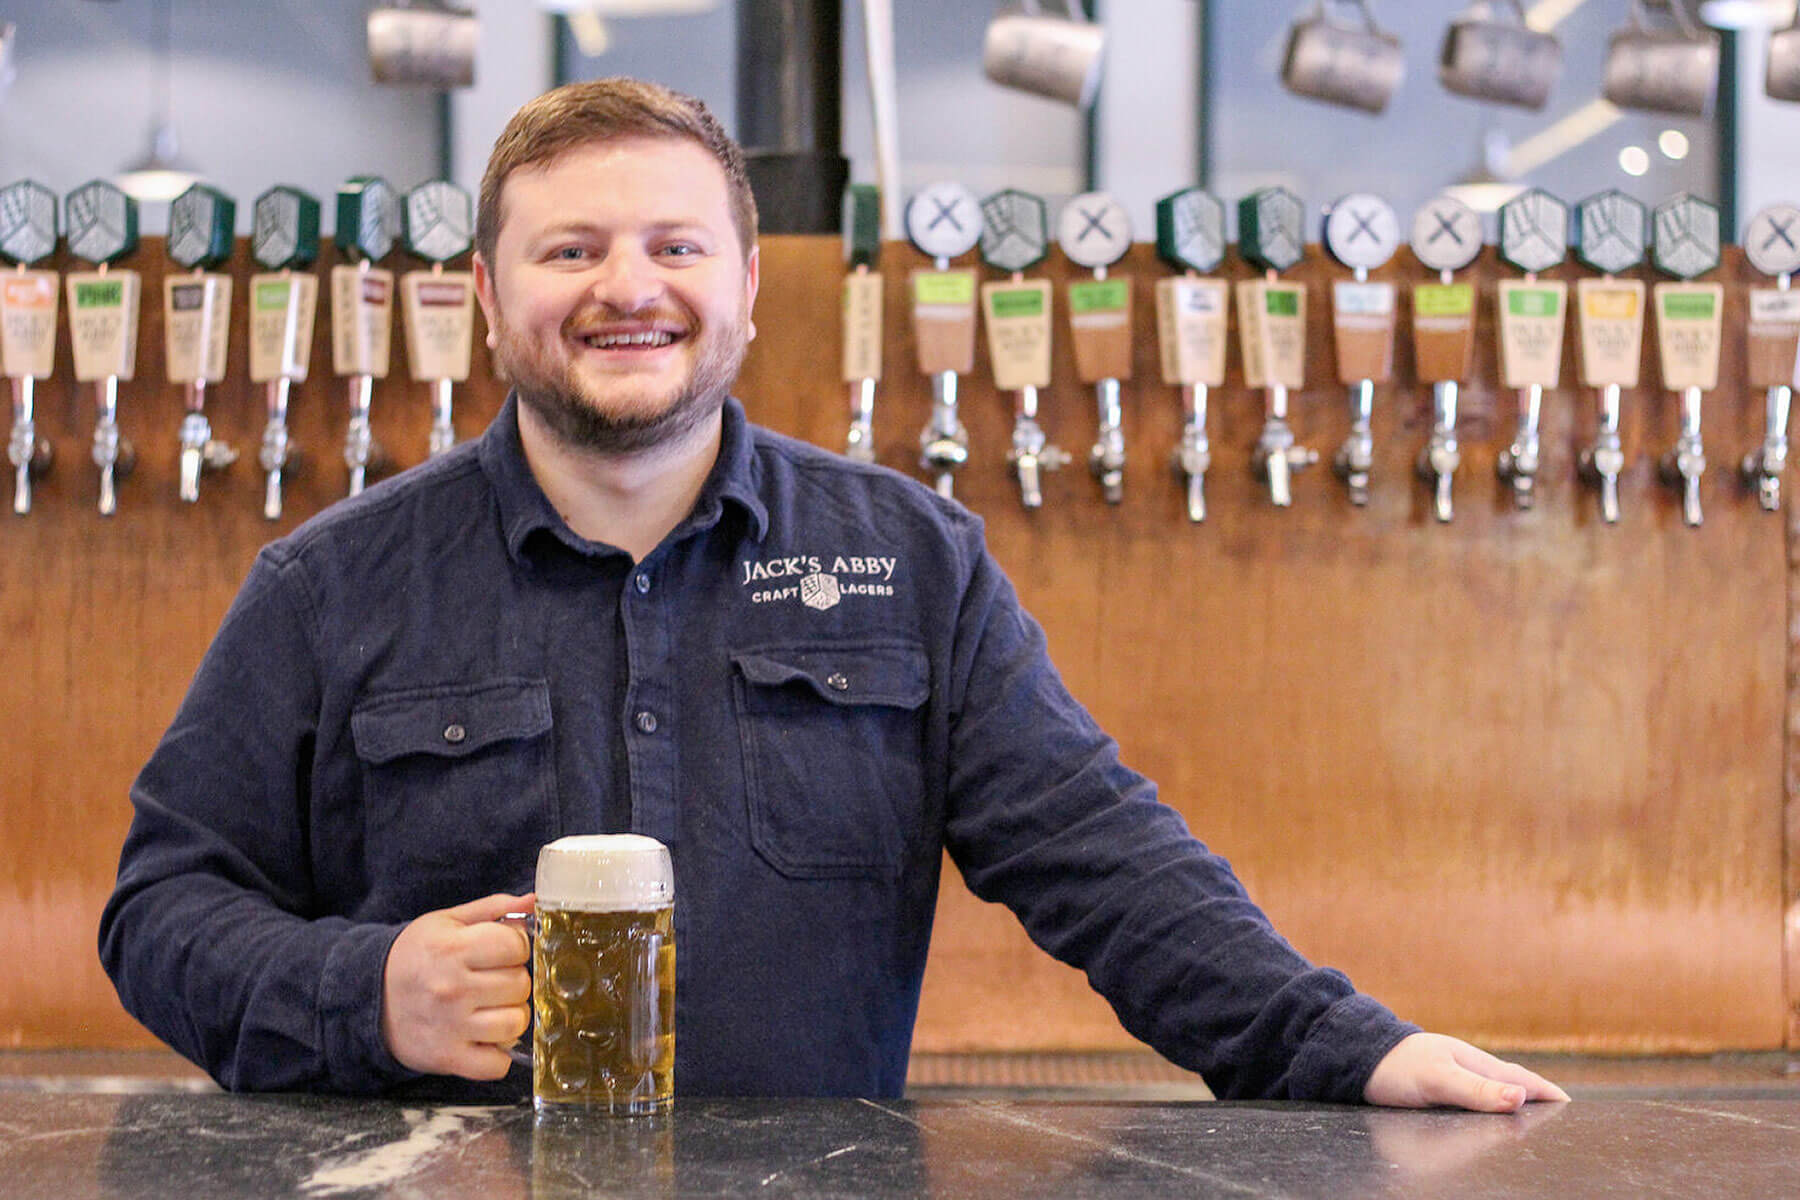 Sam Hendler, a co-founder and co-owner of Framingham, Massachusetts-based craft breweries Jack's Abby Craft Lagers and the Springdale Beer Company